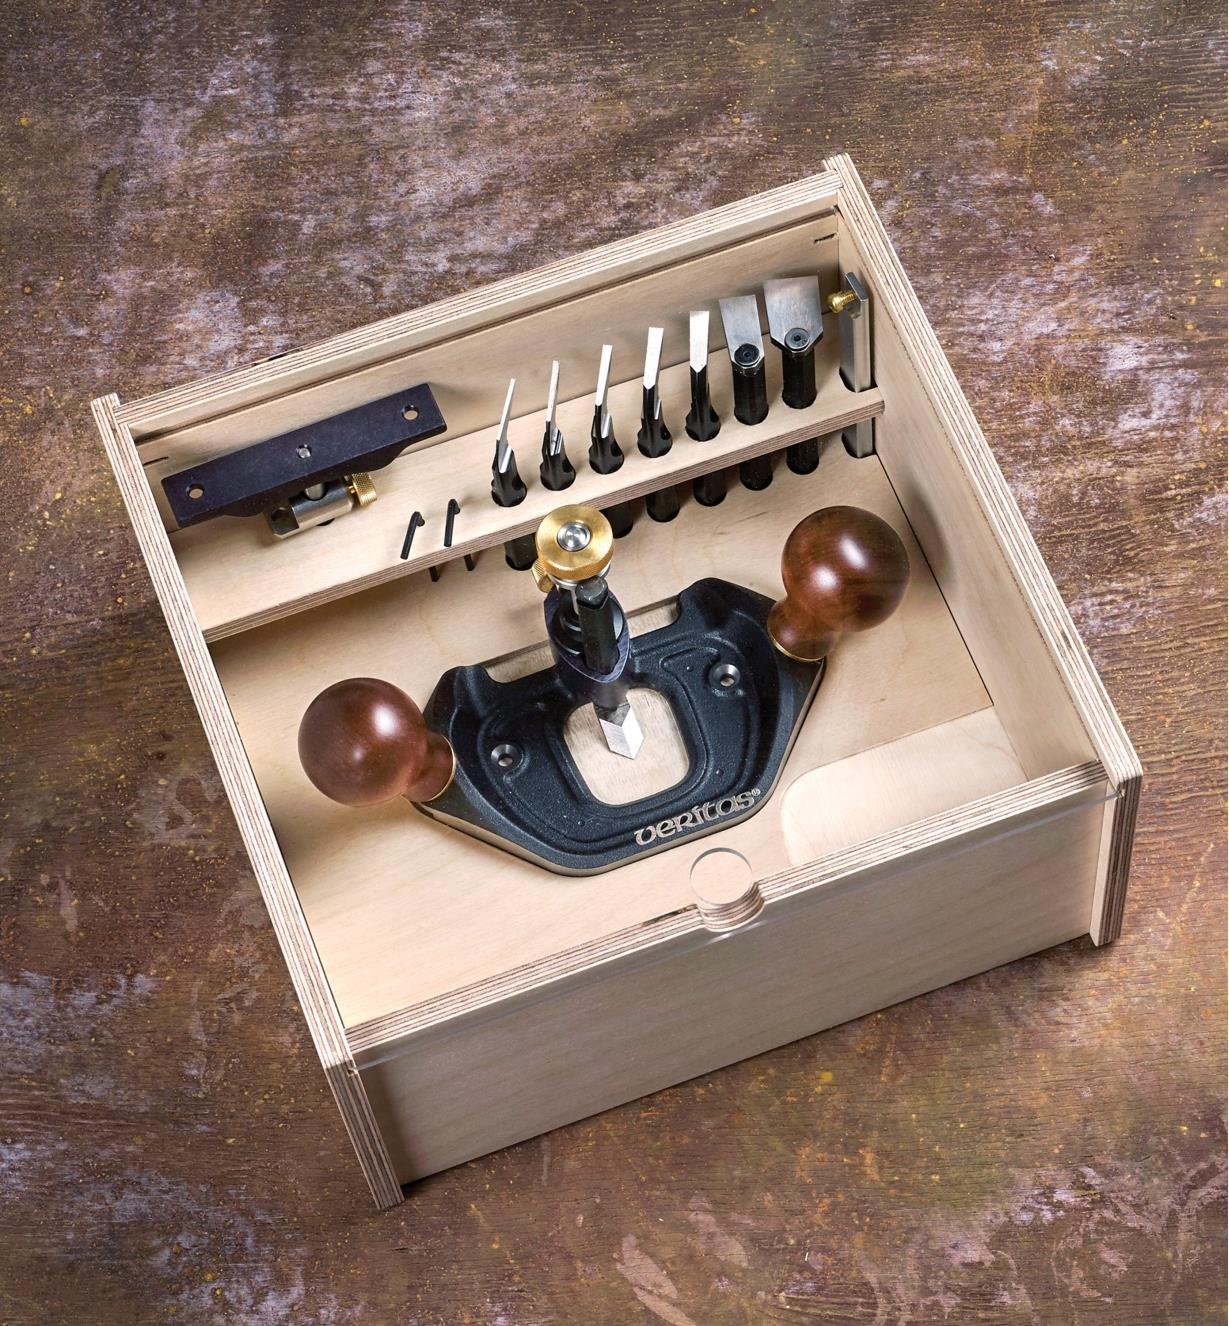 05P3893 - Large Router Plane, Box & Metric Blades Set